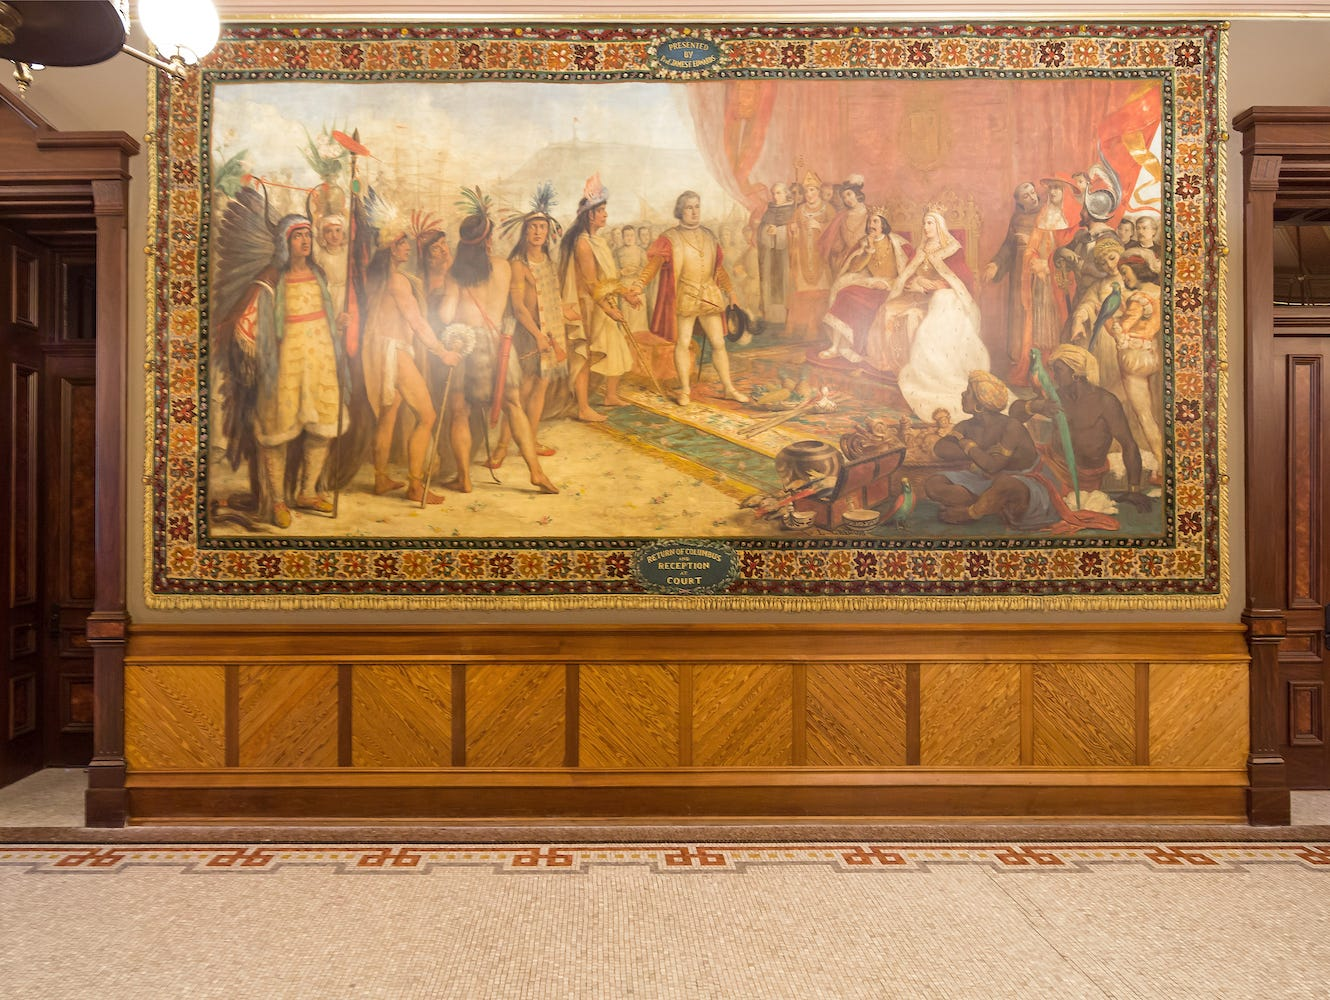 notre dame students want christopher columbus murals removed